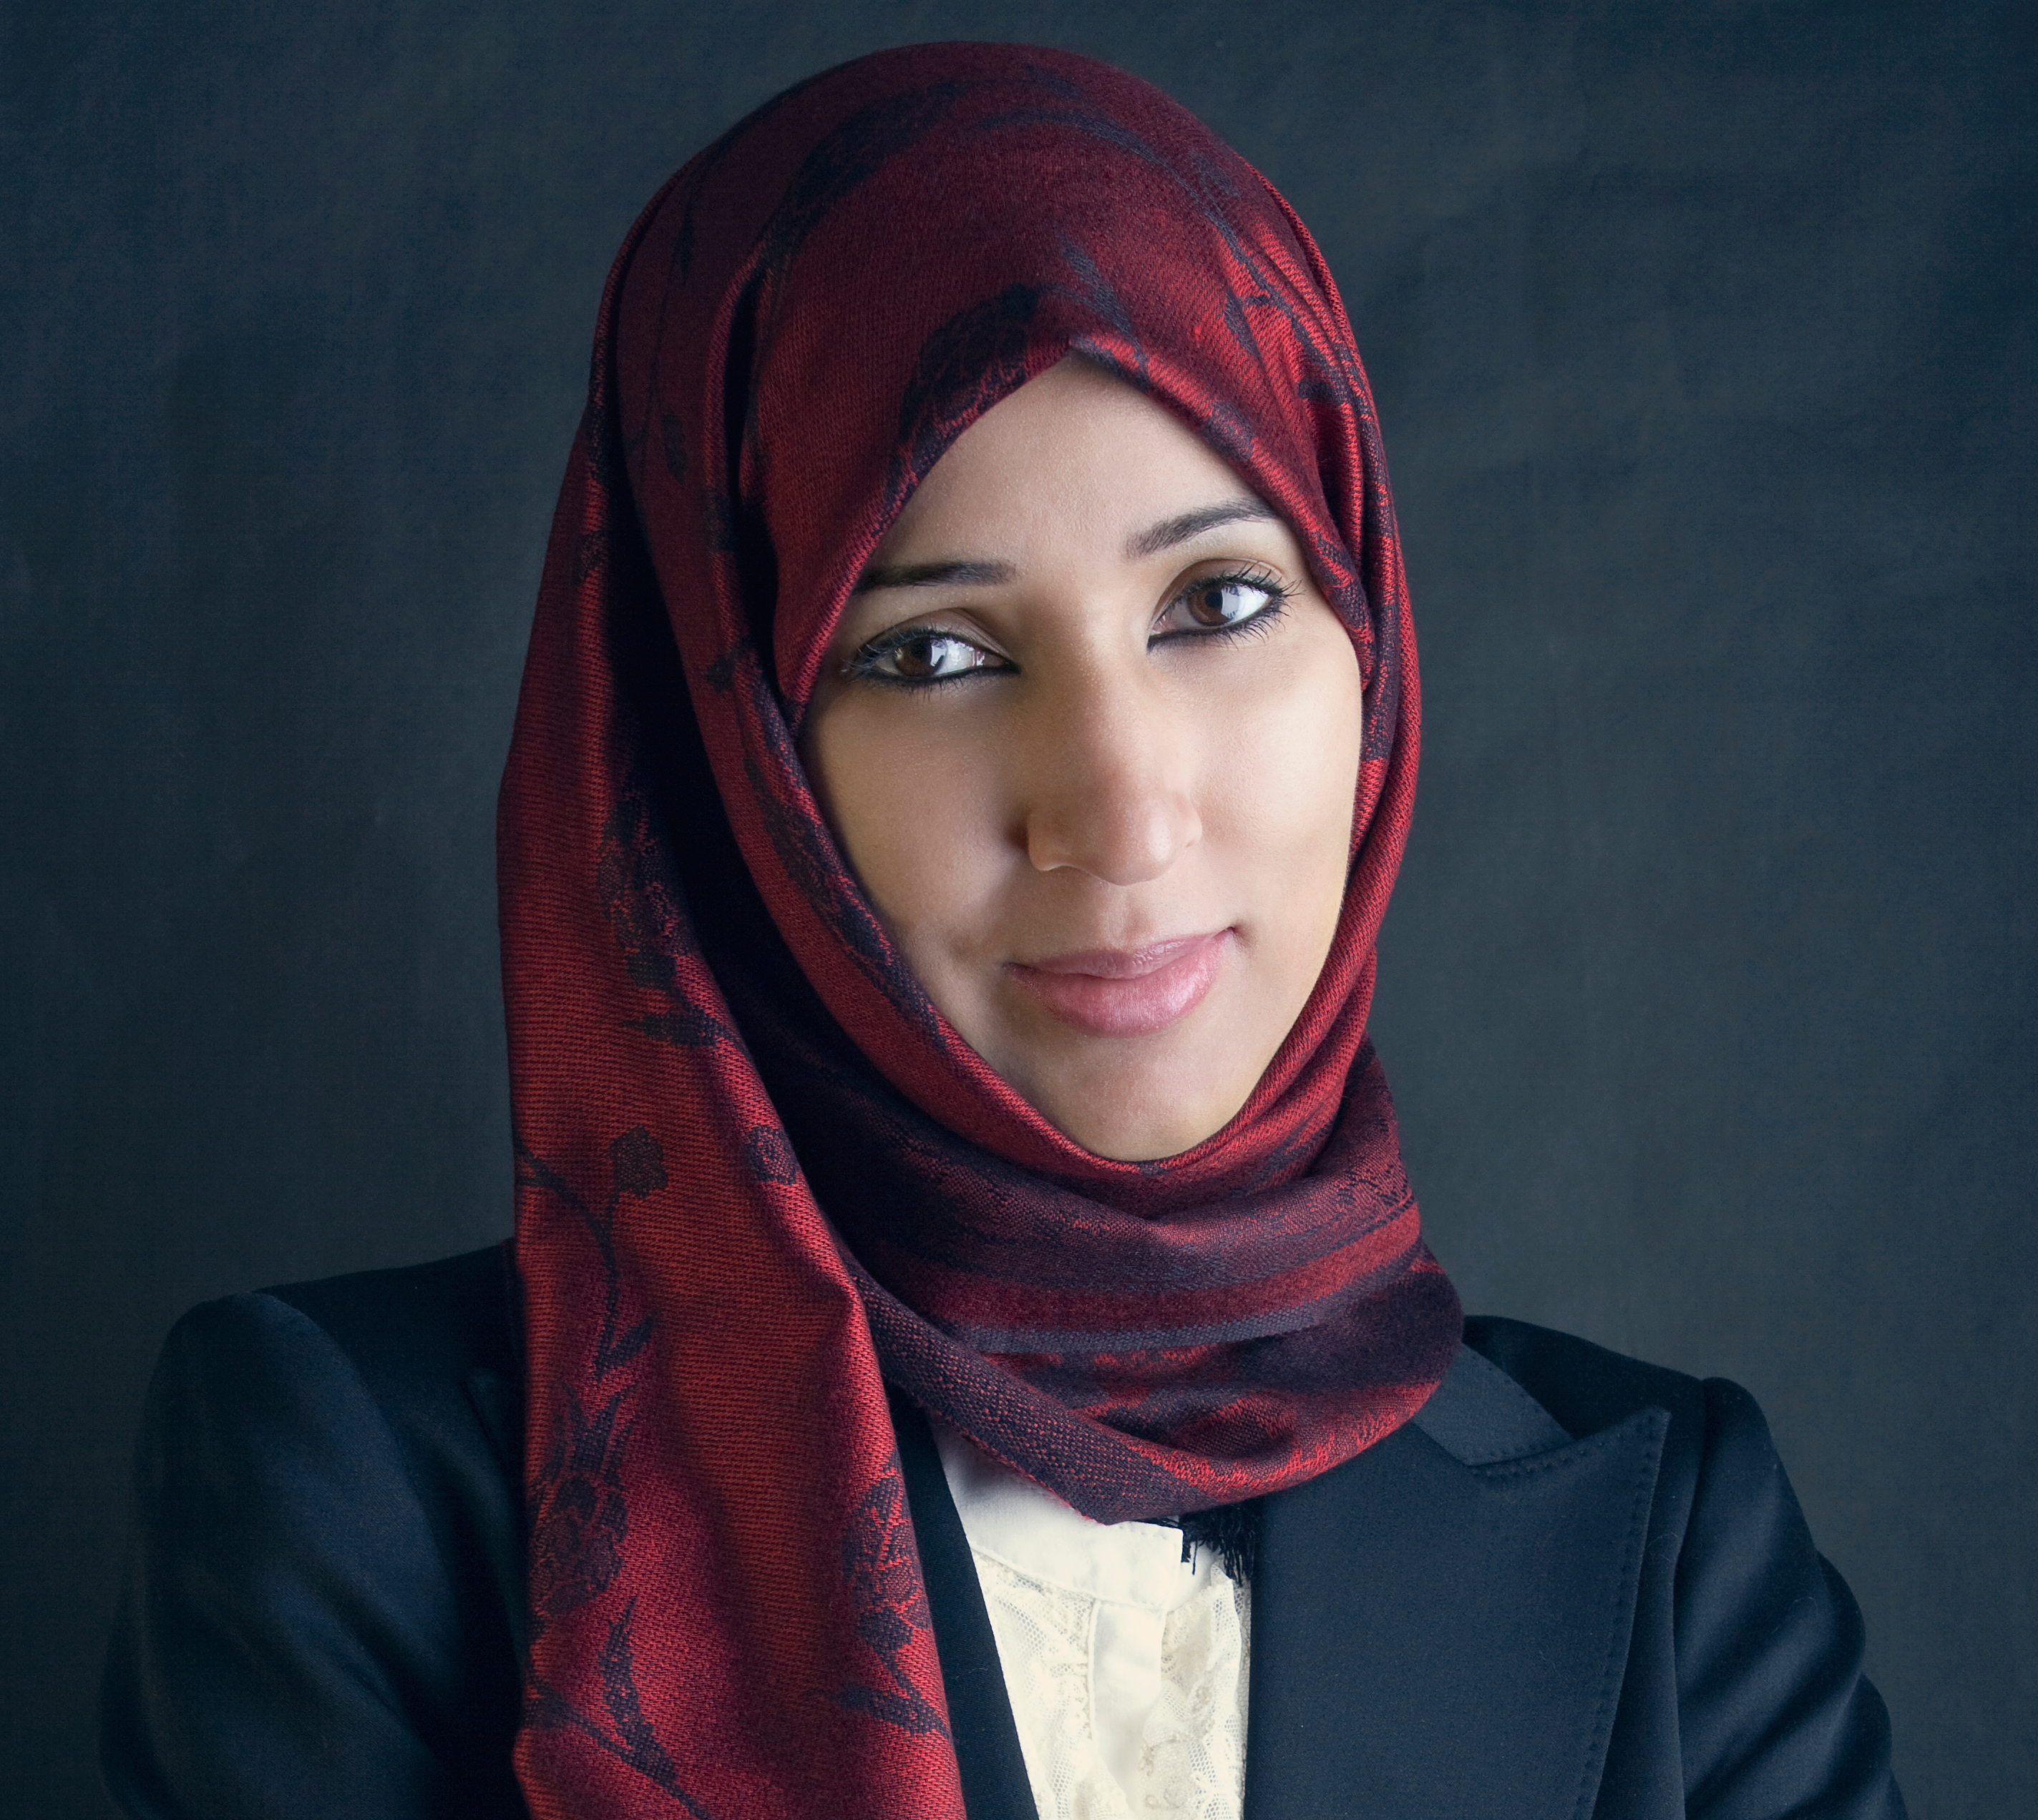 Hijab Perpetuates Womens Oppression The Reality Is Much More